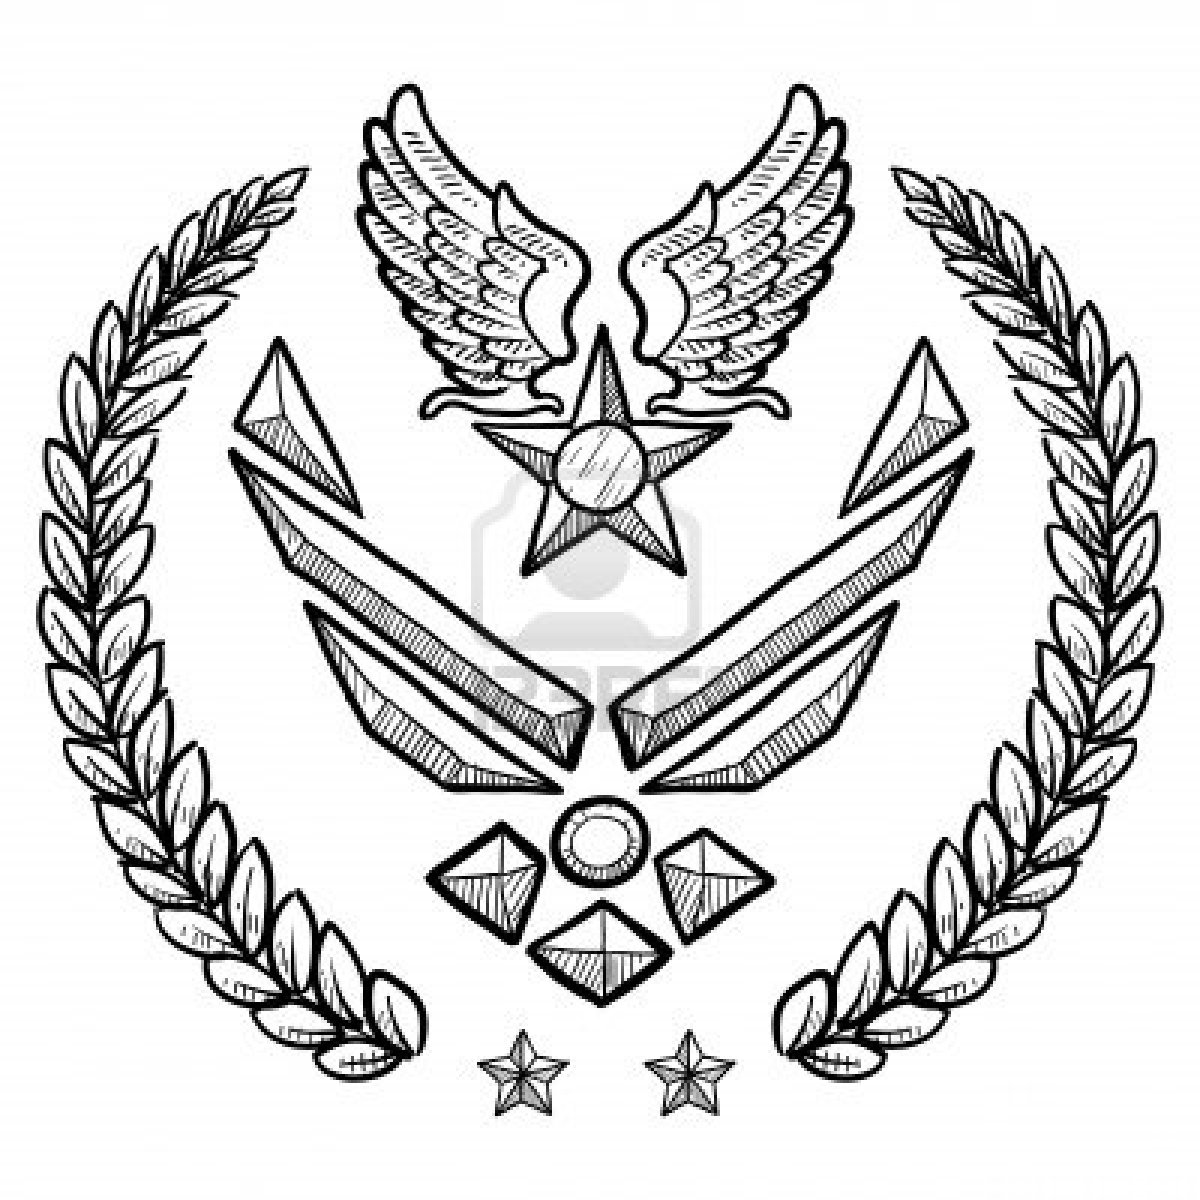 air force insignia coloring pages - photo#4